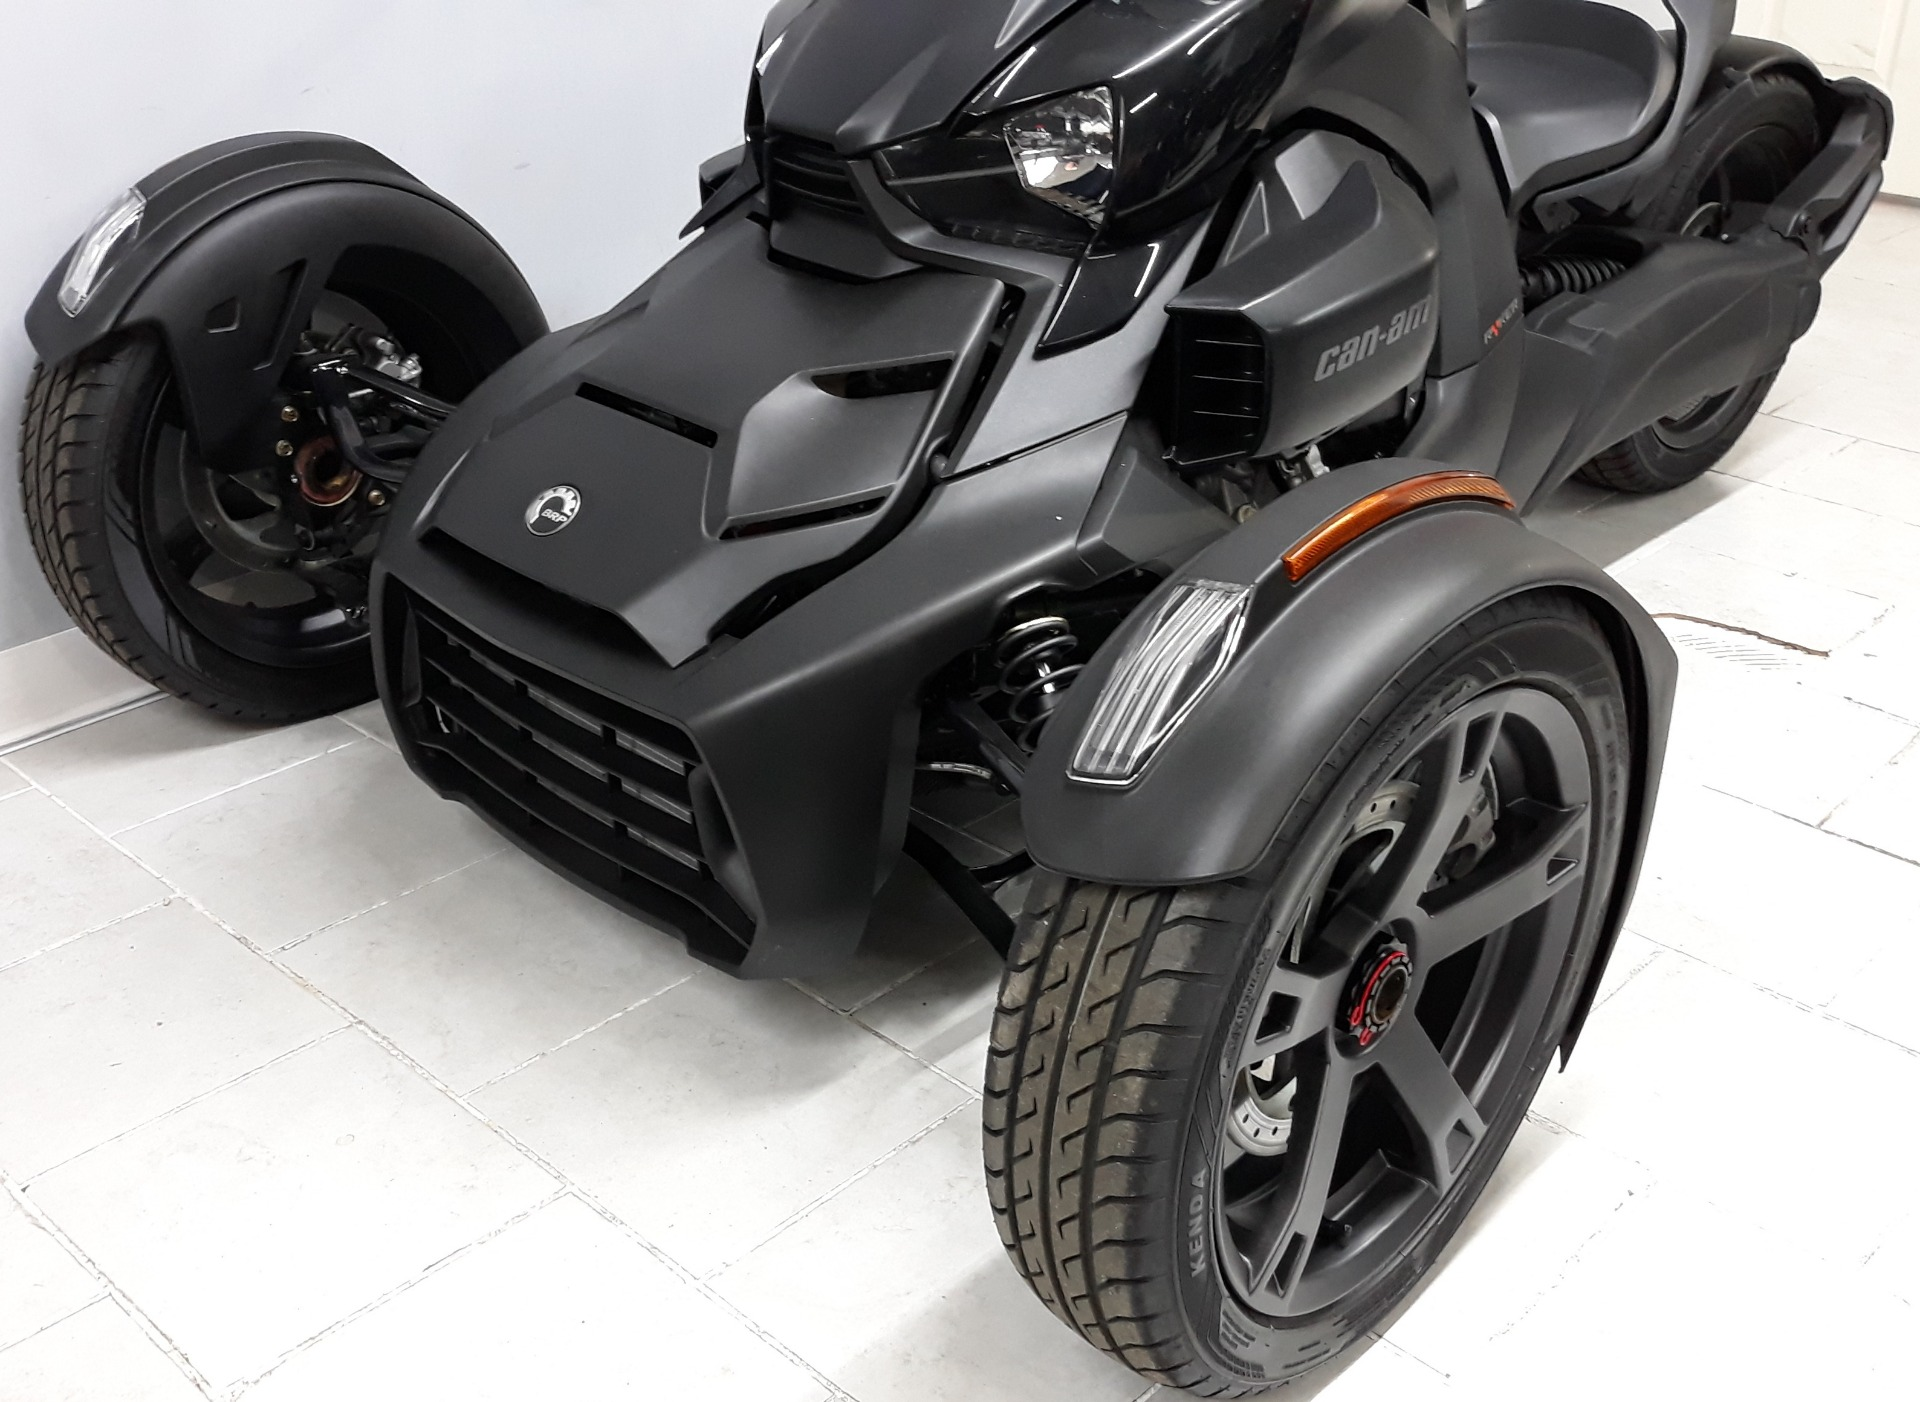 2019 Can-Am Ryker 600 ACE in Belleville, Michigan - Photo 13